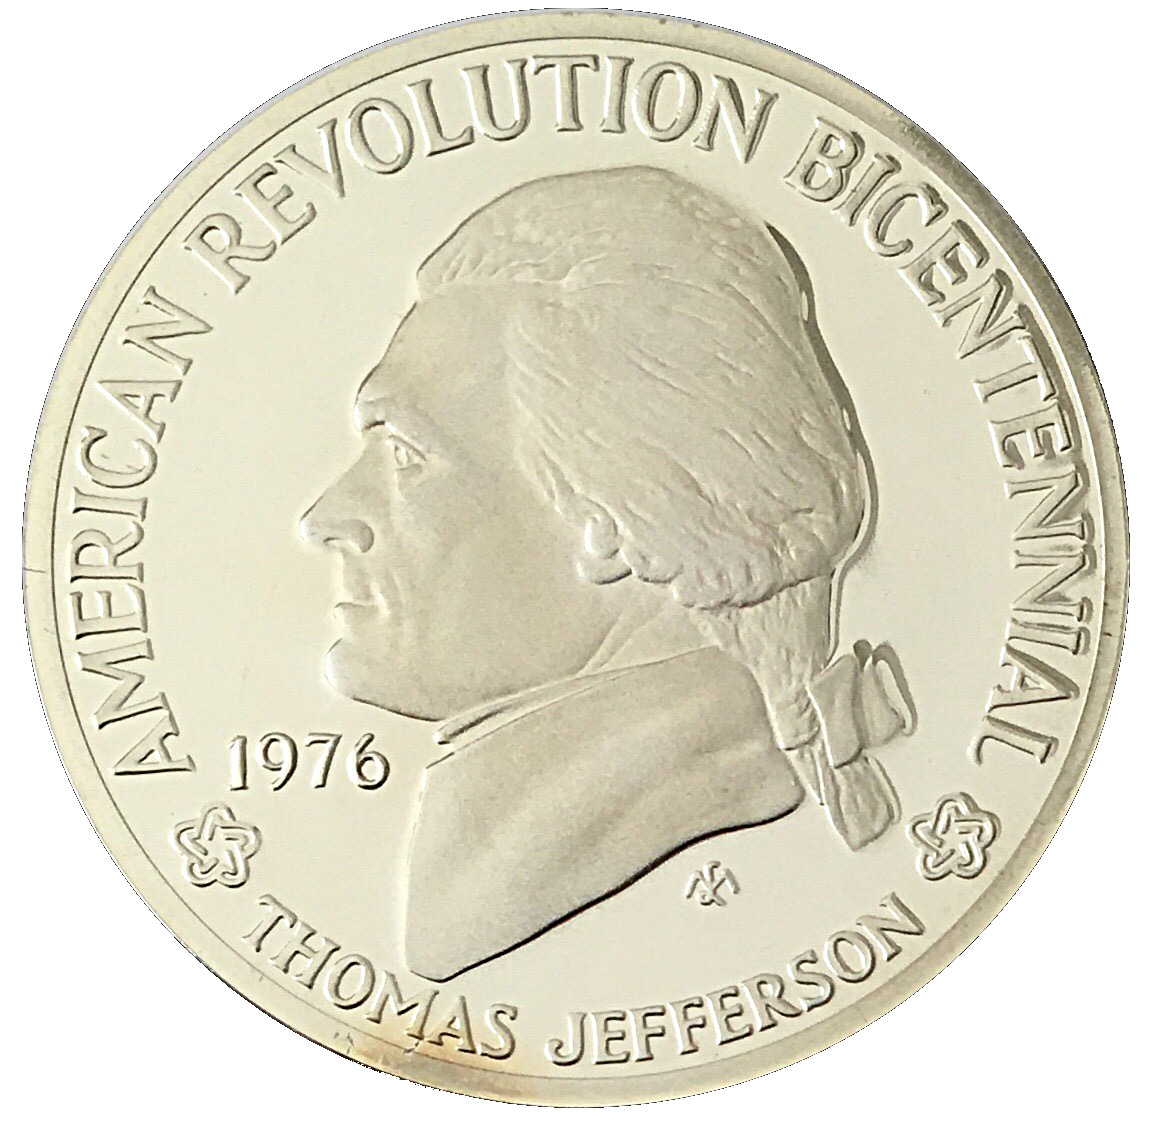 .925 Silver 1976 Thomas Jefferson American Revolution Coins